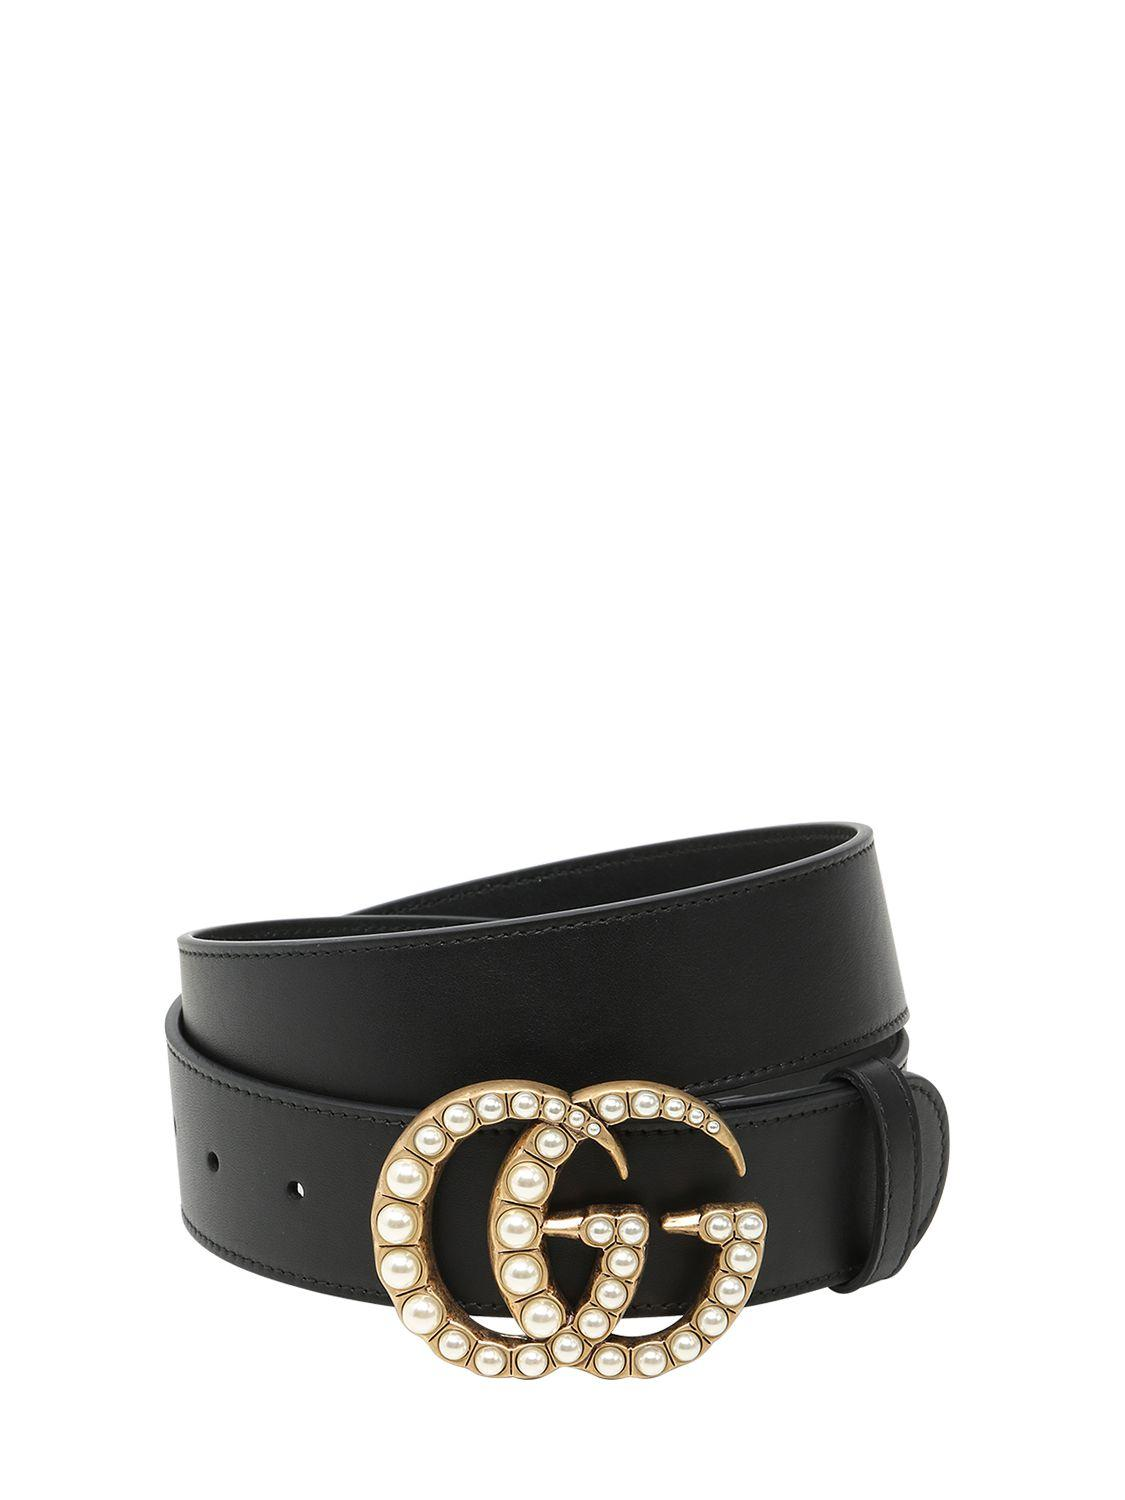 504591f1484 Lyst - Gucci 40mm Gg Marmont Pearl Buckle Belt in Black